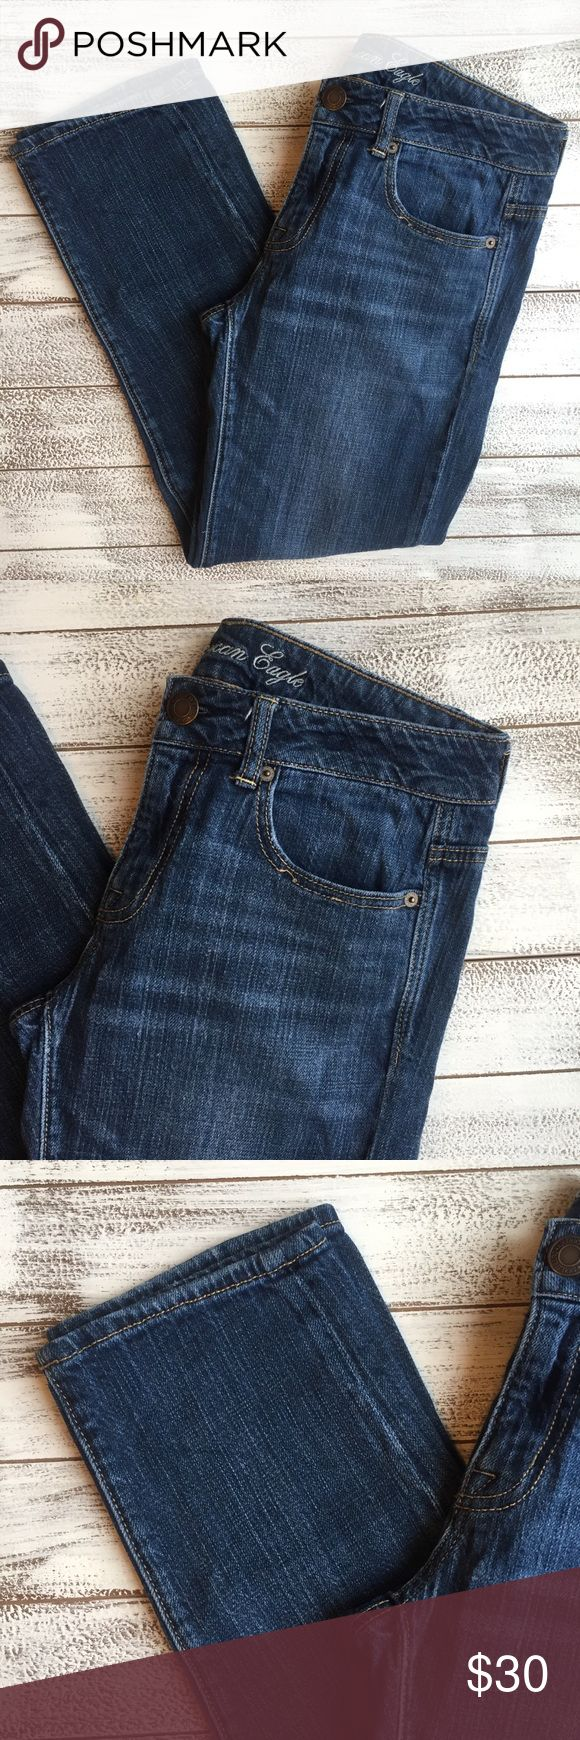 "AMERICAN EAGLE BOY FIT JEANS 👖 American eagle boy fit jeans. Excellent condition. Stretch material. Size 0R.  Waist 15"" Inseam 24"" Length 33"" American Eagle Outfitters Jeans Ankle & Cropped"